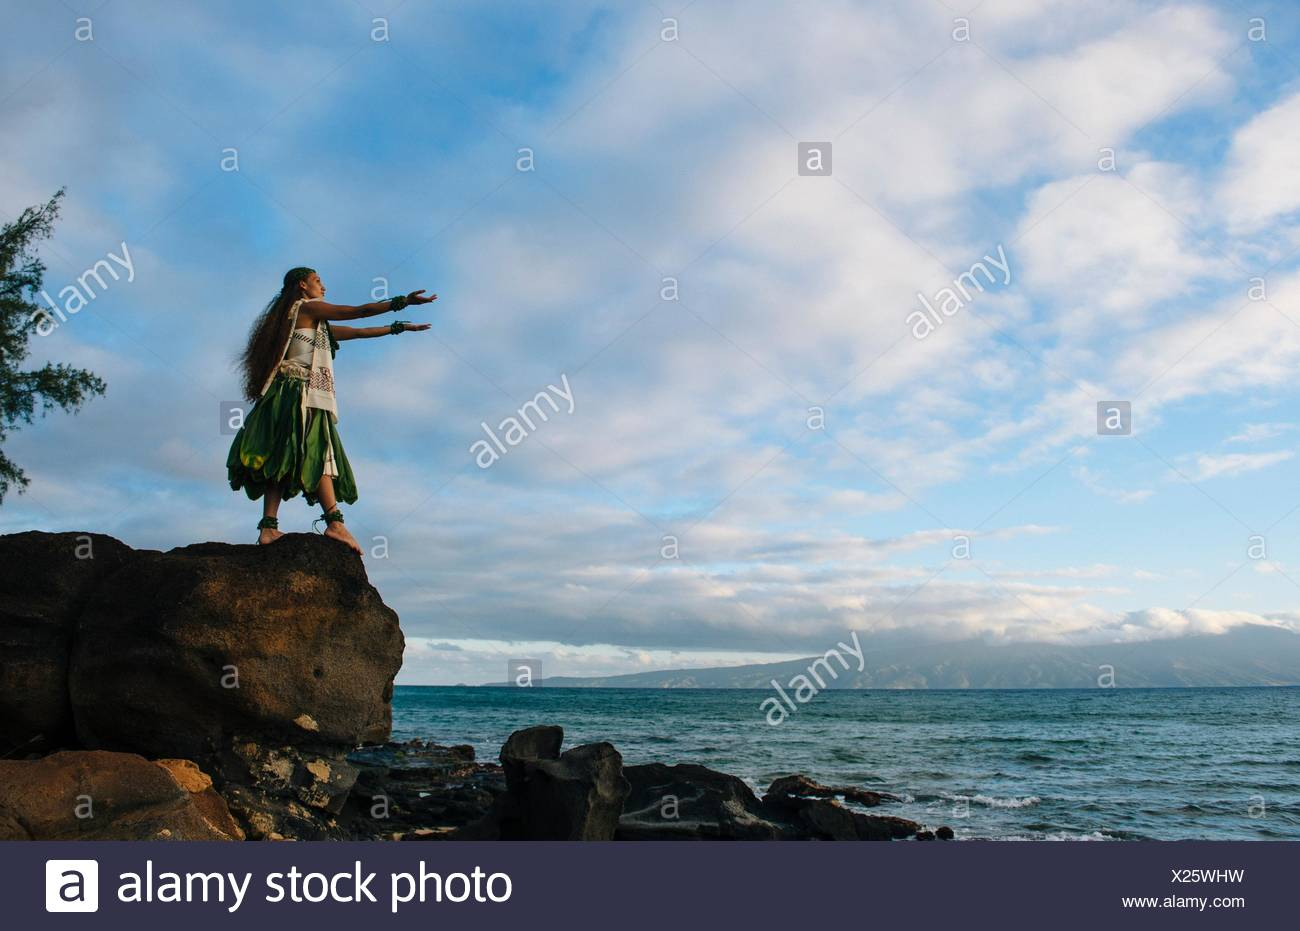 Woman hula dancing on top of coastal rocks wearing traditional costume, Maui, Hawaii, USA - Stock Image